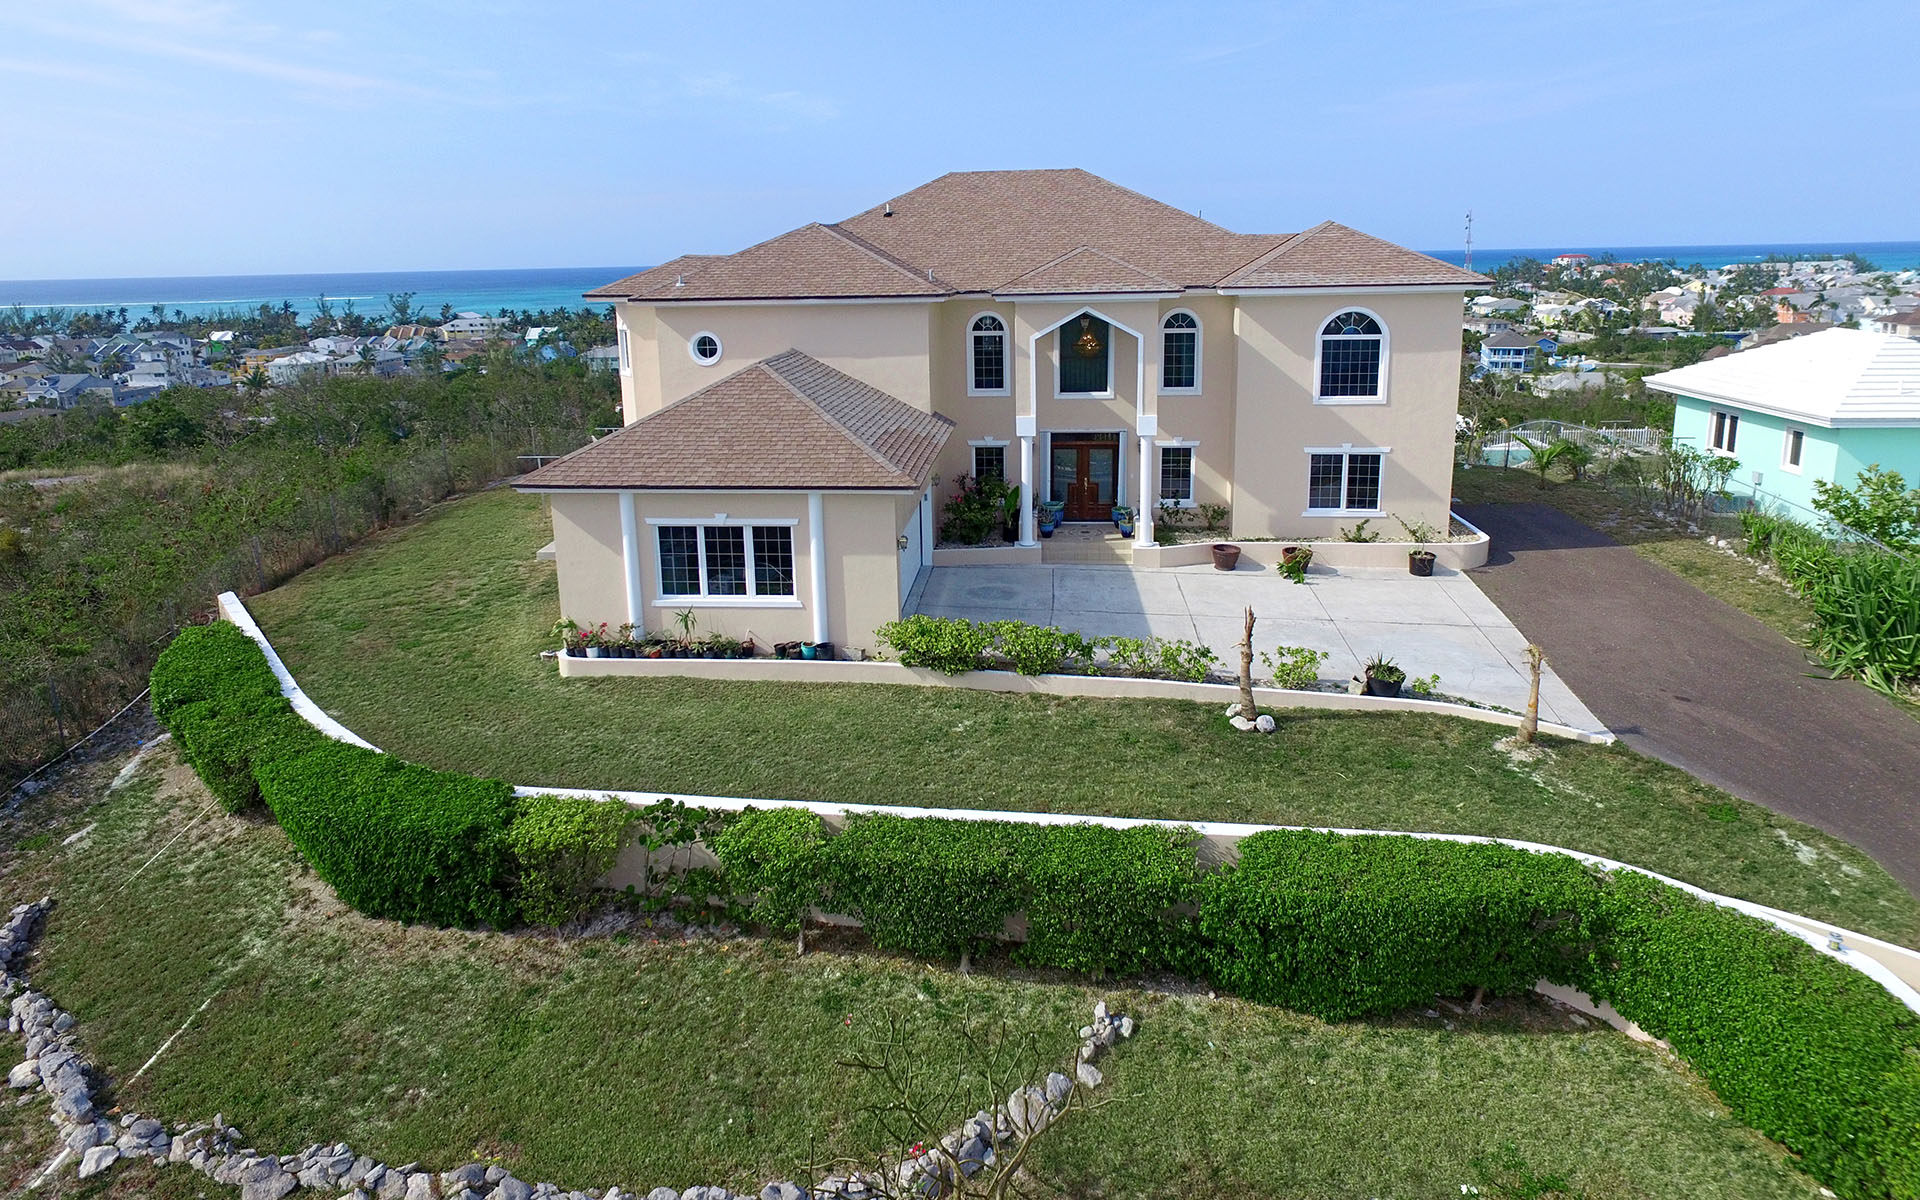 Maison unifamiliale pour l Vente à Large Oceanview Hilltop Home in Westridge MLS 27832 Nassau New Providence And Vicinity